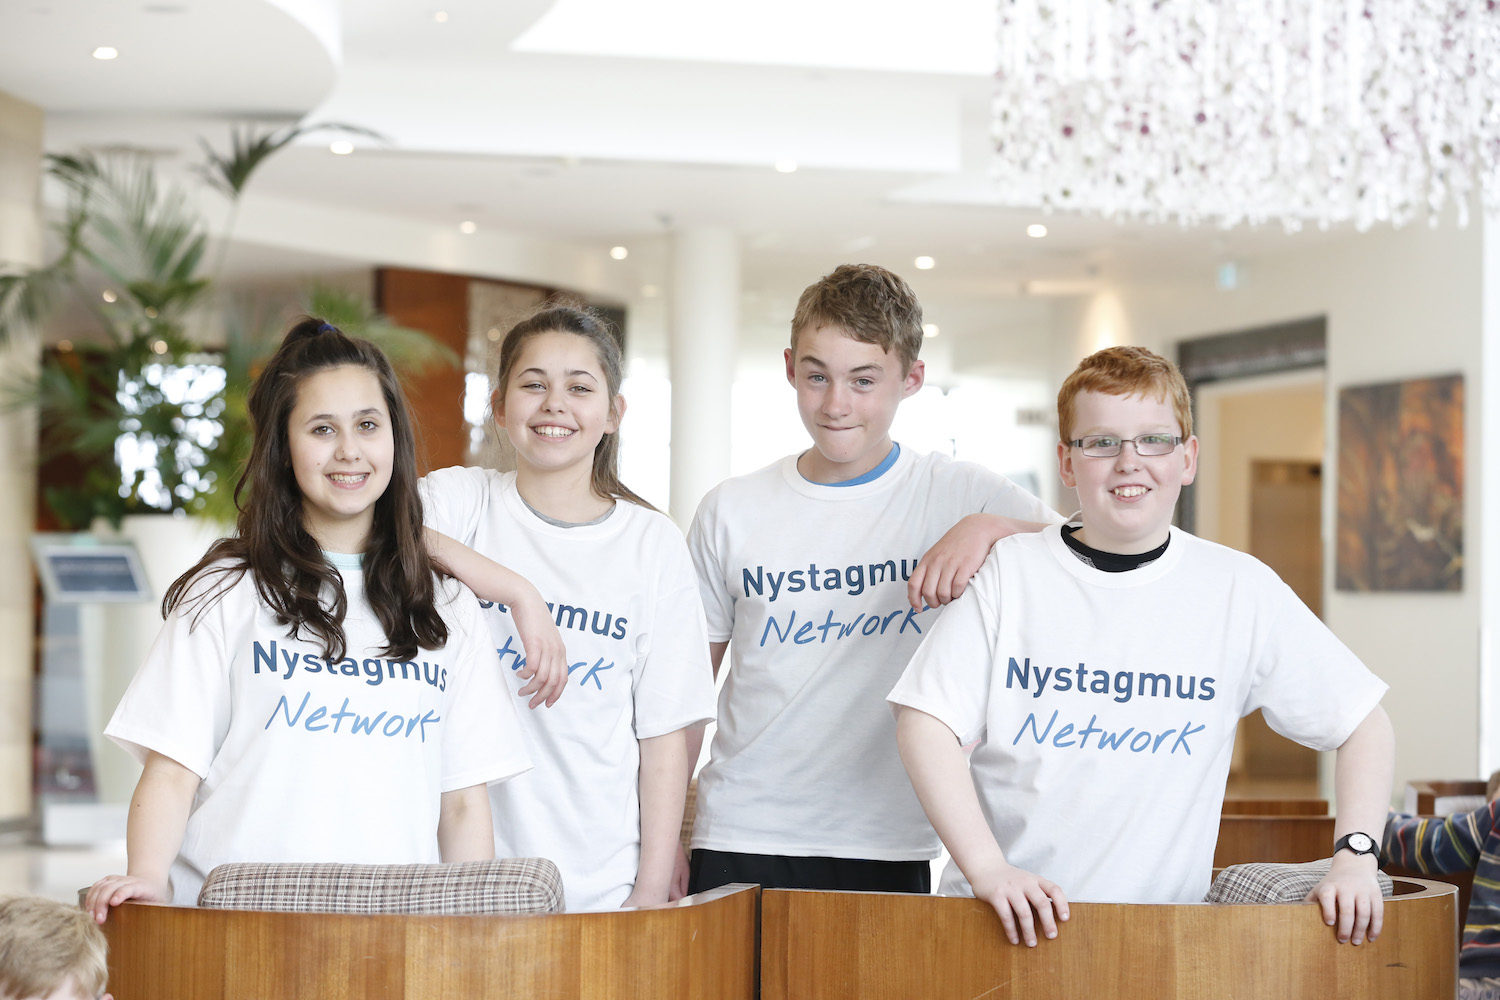 Volunteer for the Nystagmus Network